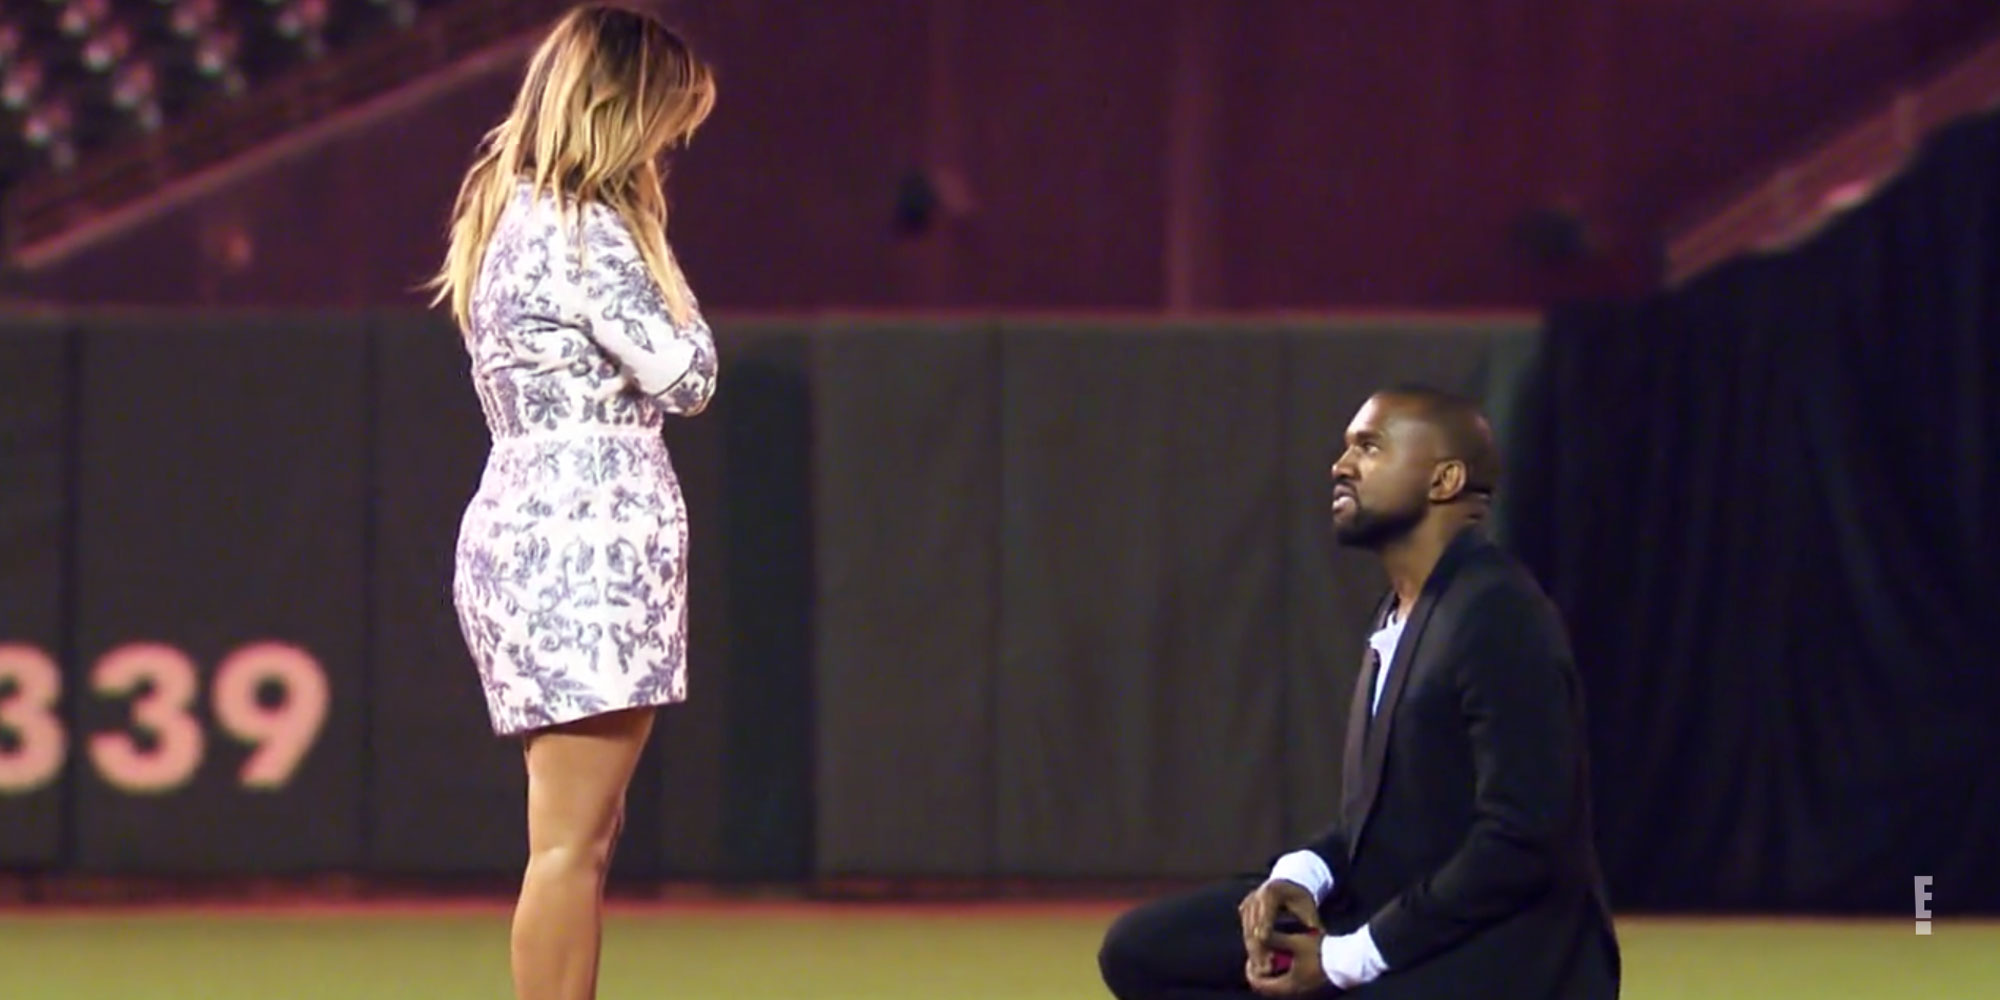 "Revisit the 5 Most Kimye Things the Power Couple Have Done Kanye's 2013 proposal at AT&T Park - West surprised Kardashian on her 33rd birthday in October 2013 by renting out San Fransisco's AT&T Park (now called Oracle Park) for a night to remember. He rounded up her friends and family members to witness the occasion, which culminated in West presenting Kardashian with a 15-carat Lorraine Schwartz diamond ring in front of a JumboTron that read, ""PLEEEASE MARRY MEEE!"""